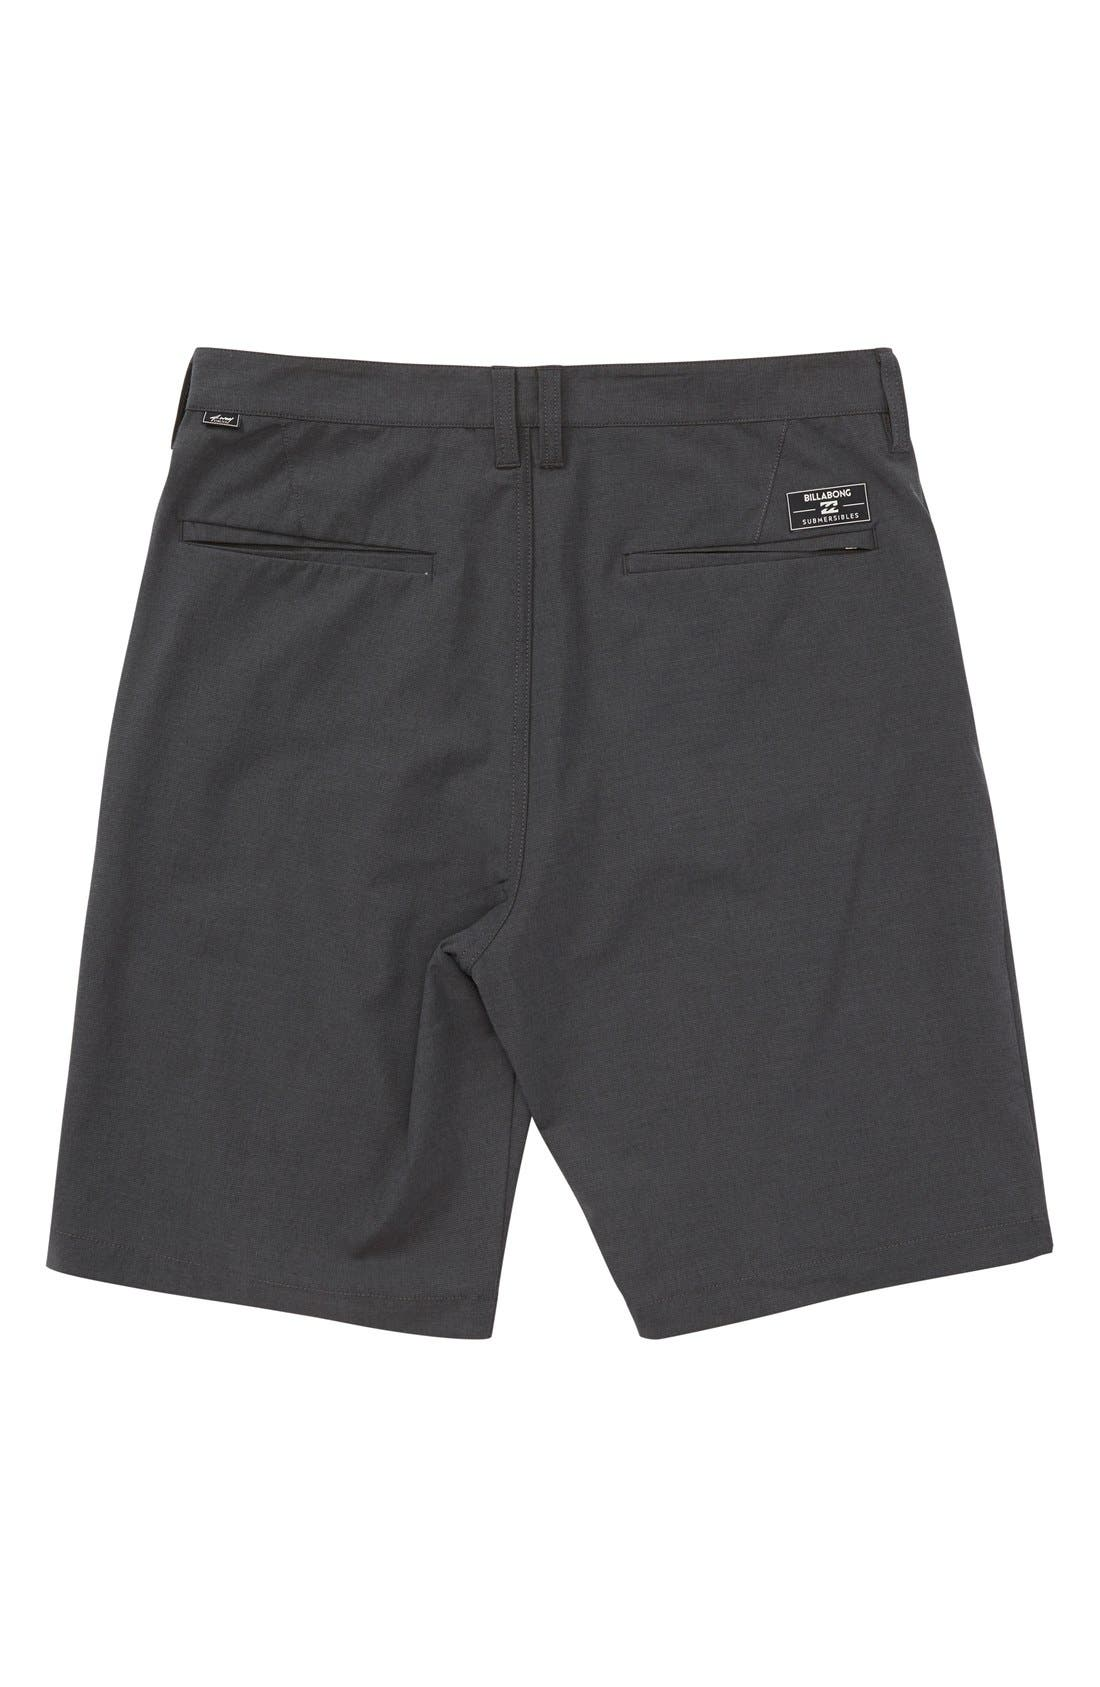 Crossfire X Submersible Hybrid Shorts,                             Alternate thumbnail 20, color,